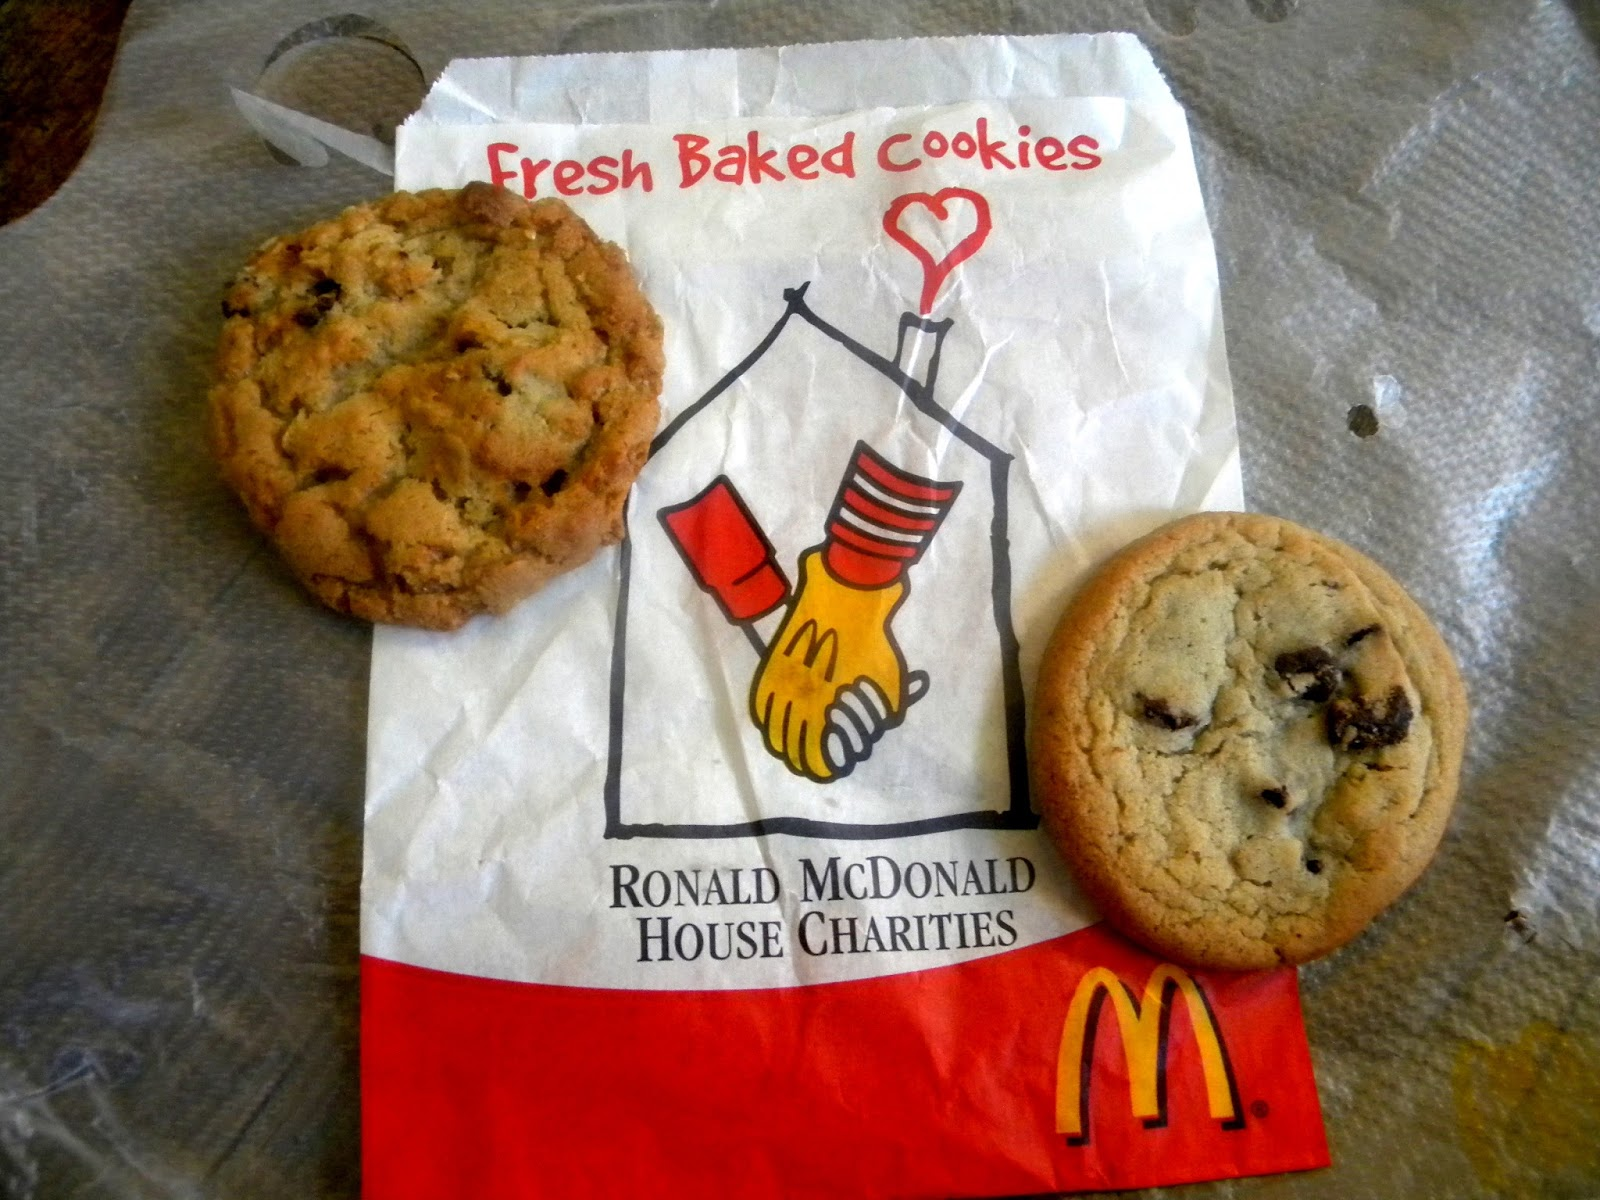 McDonald's Chewy Oatmeal Raisin & Chocolate Chip Cookies photo/editing by sookietex